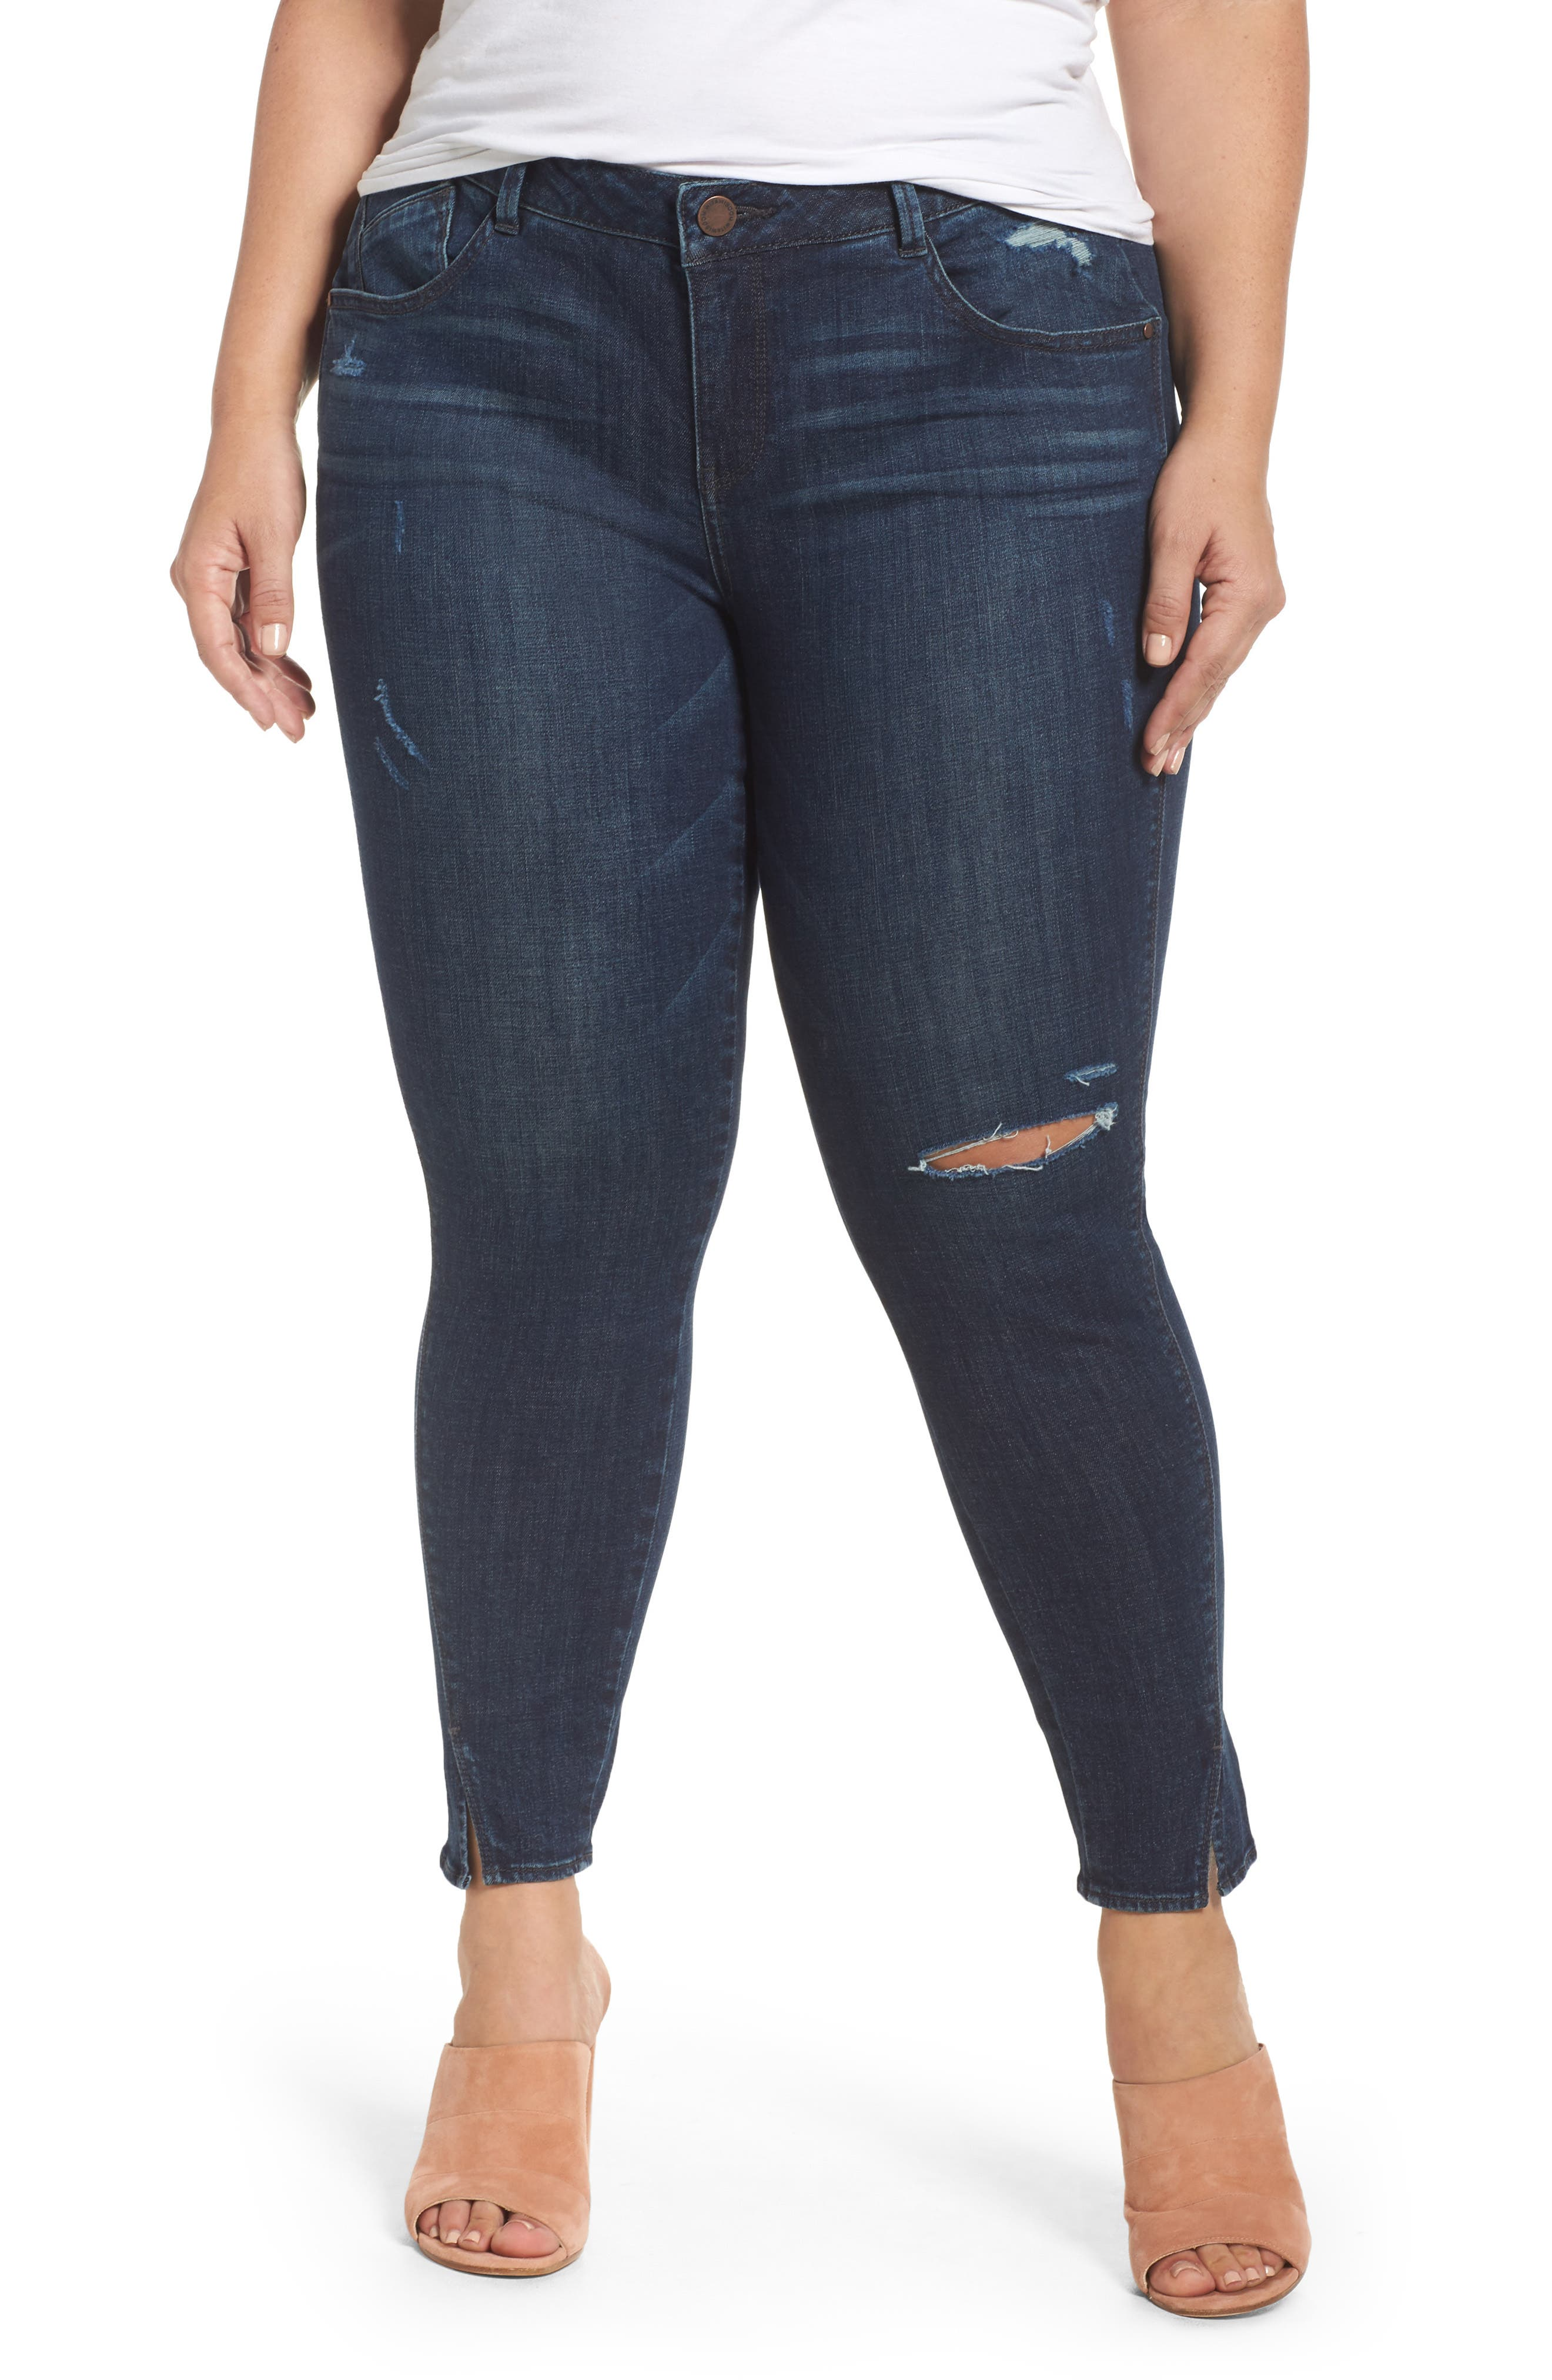 Twisted Seam Ankle Skimmer Jeans,                         Main,                         color, Indigo